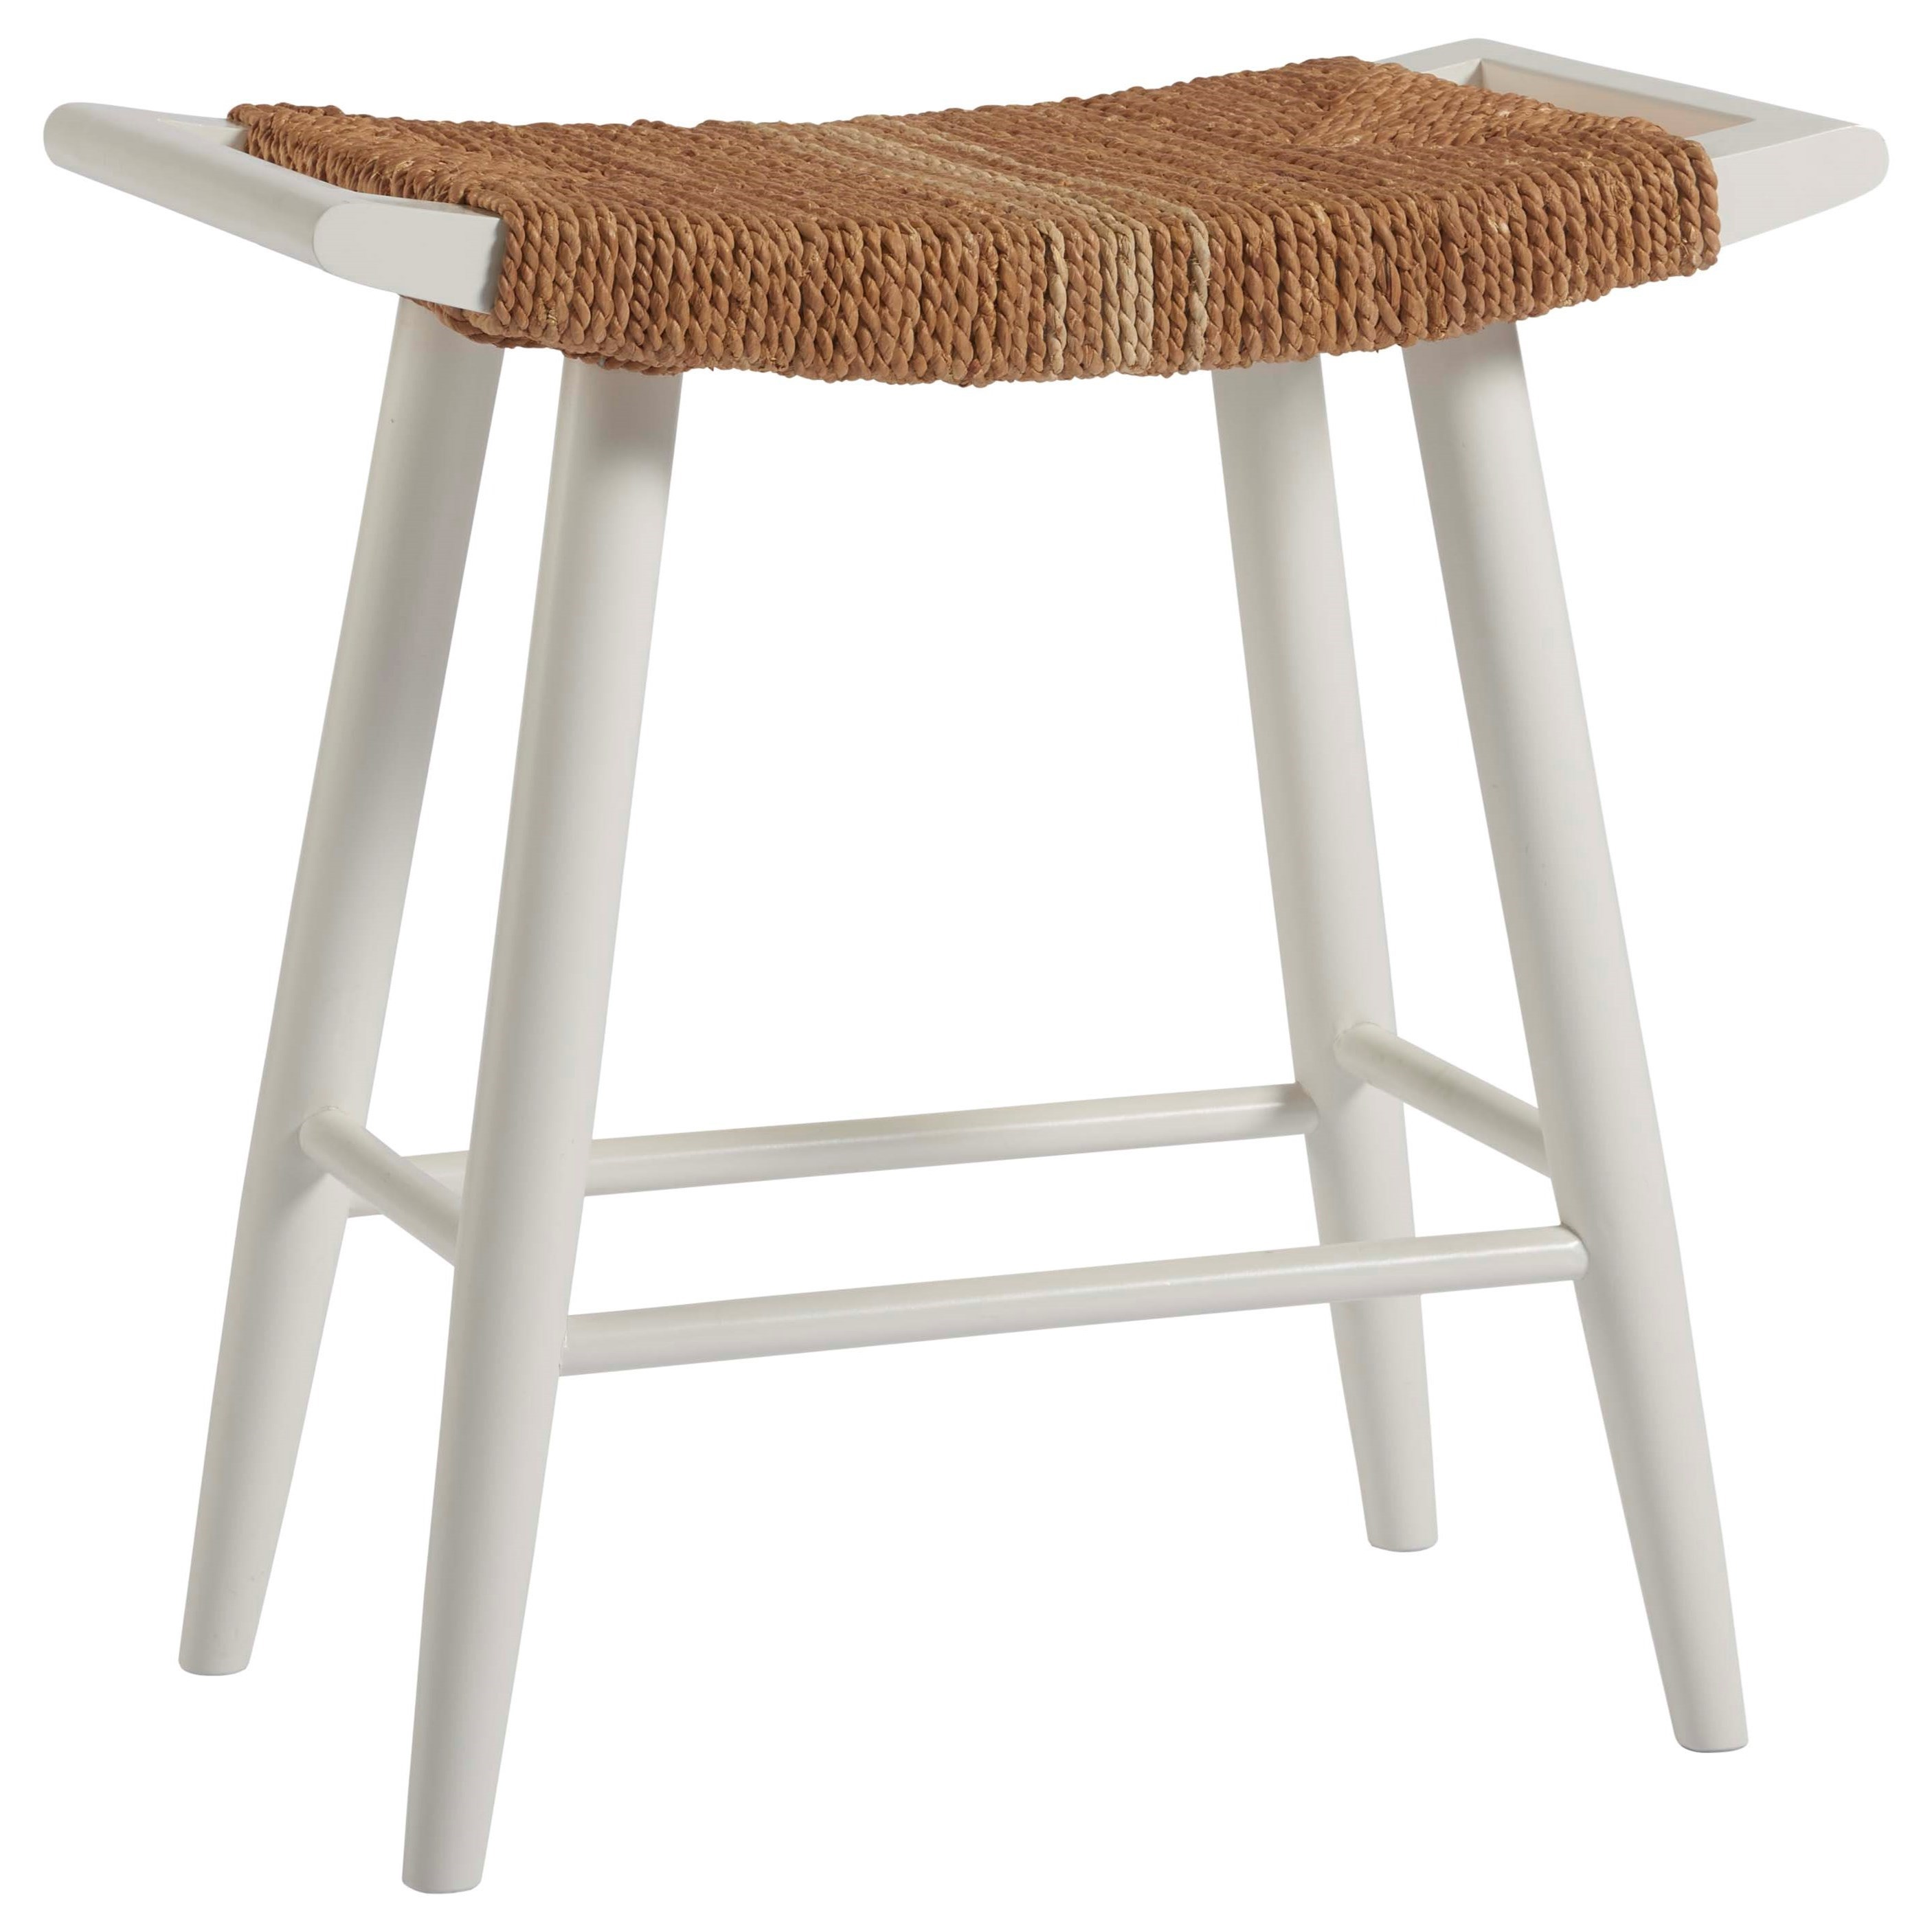 Coastal Living Home - Escape Counter Stool by Universal at Baer's Furniture